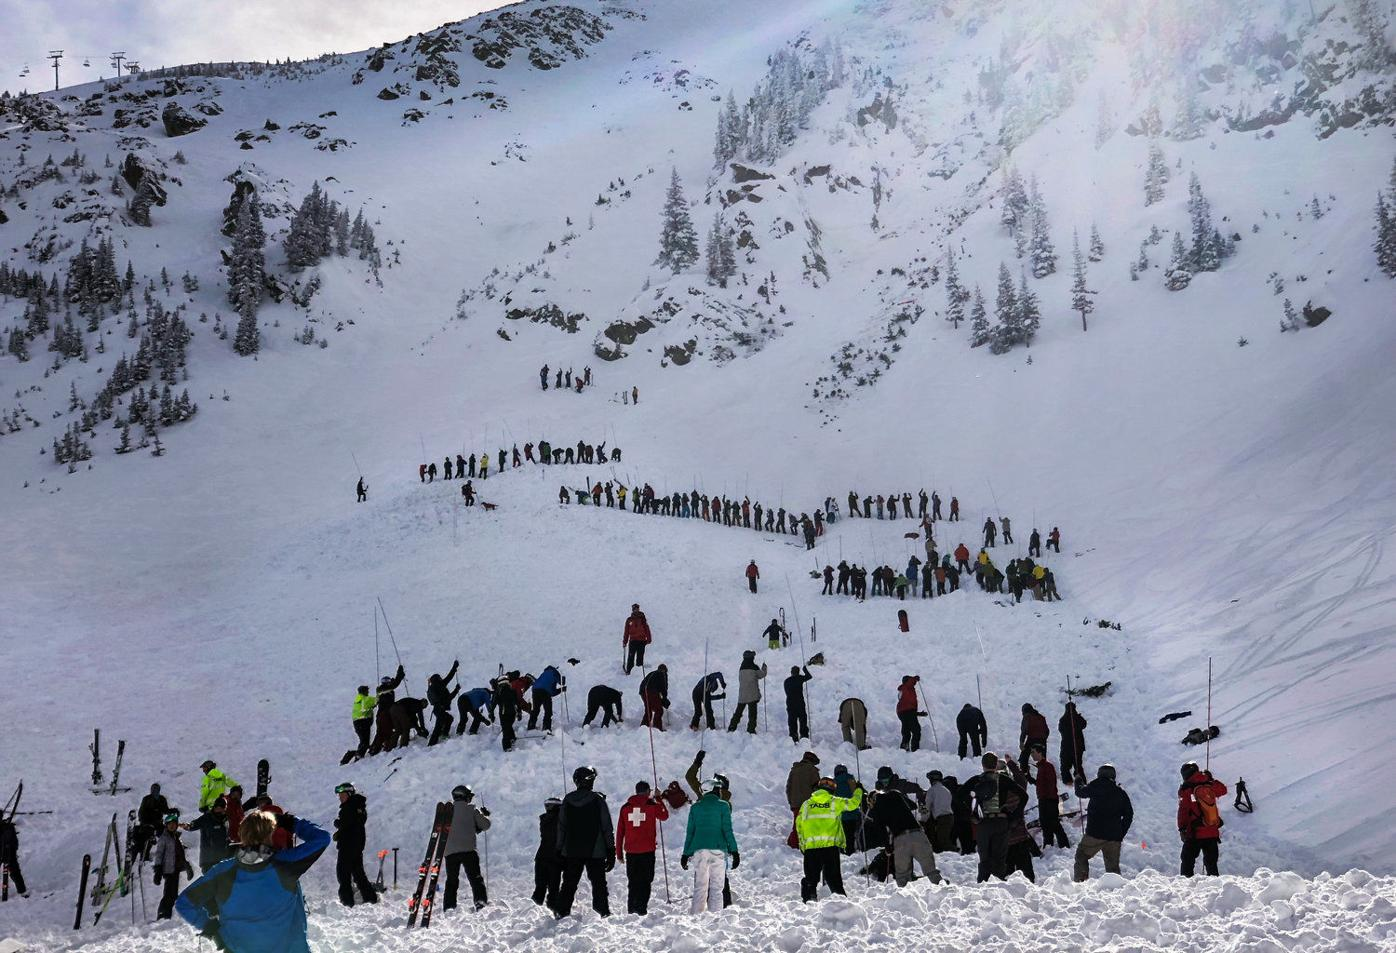 One skier dies, second critically injured after avalanche at Taos Ski Valley